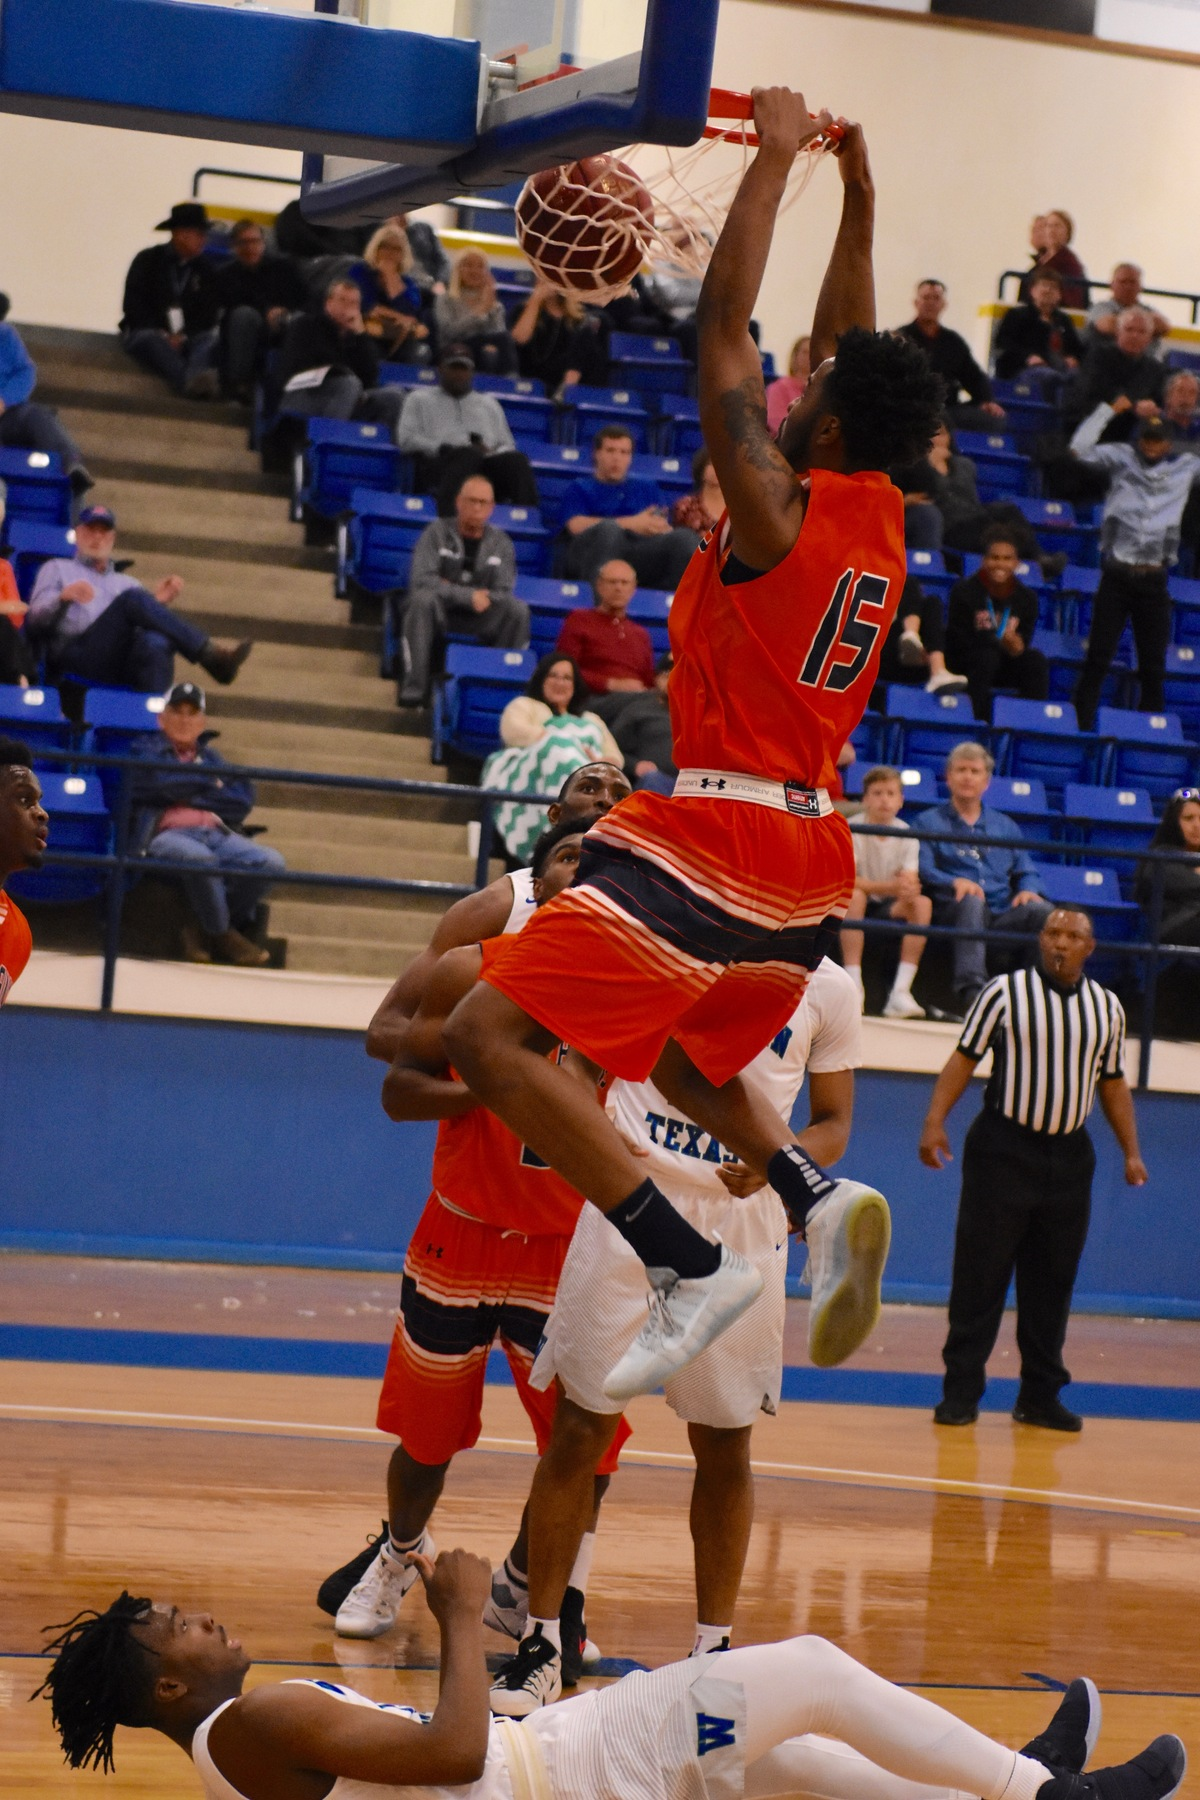 Texans fall to Western Texas 82-74 in semifinal round of Region V Tournament on Friday